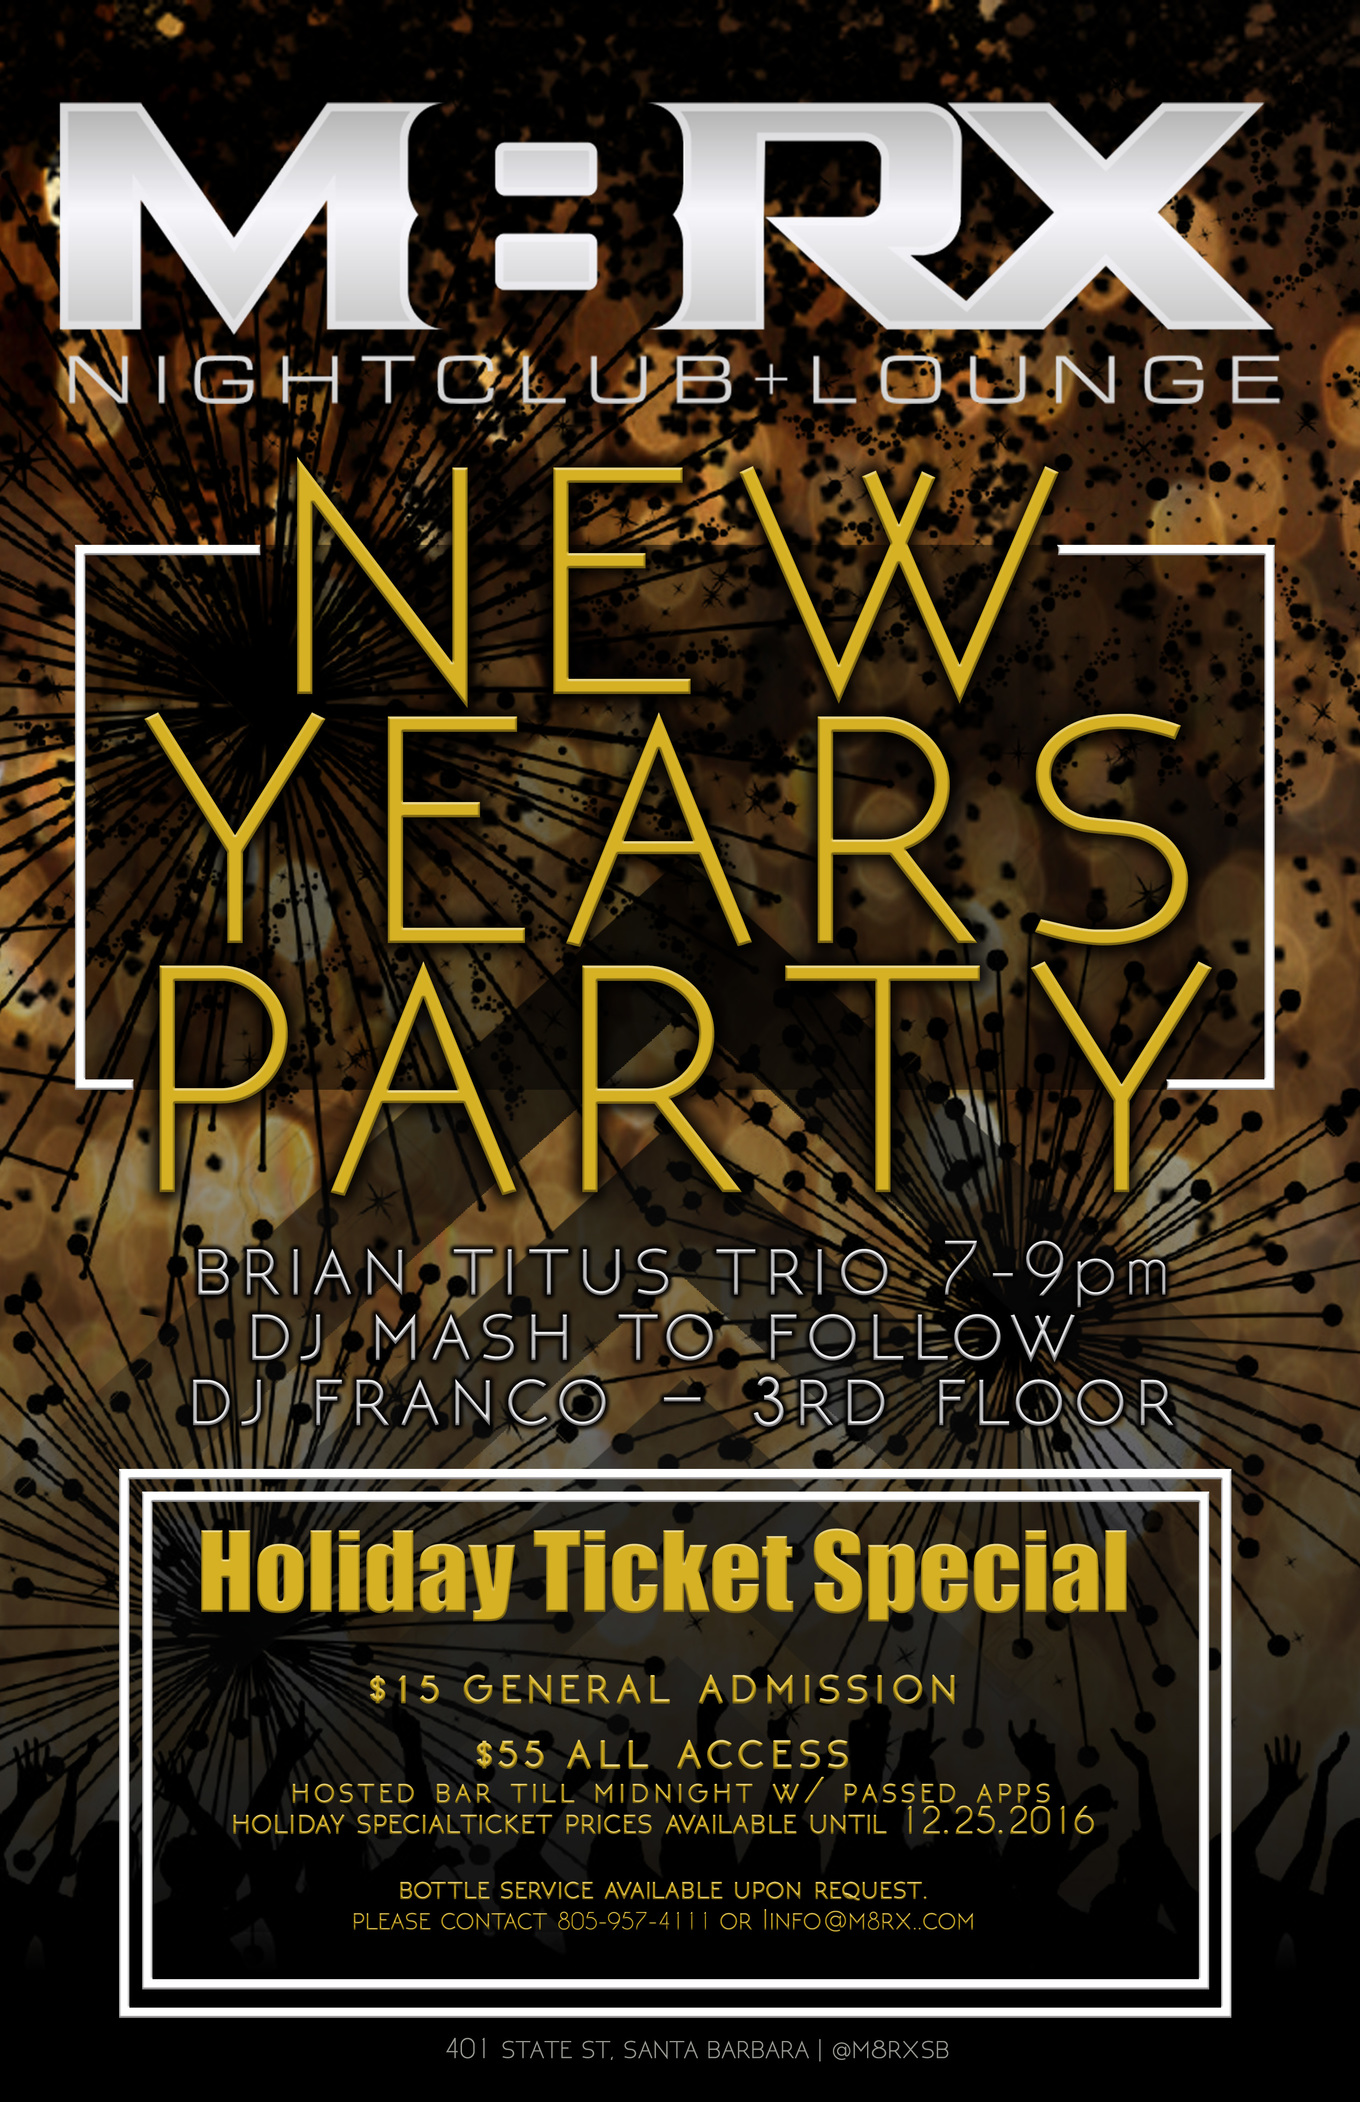 NYE 2017 at M8RX Nightclub and Lounge - Tickets - M8RX Nightclub and